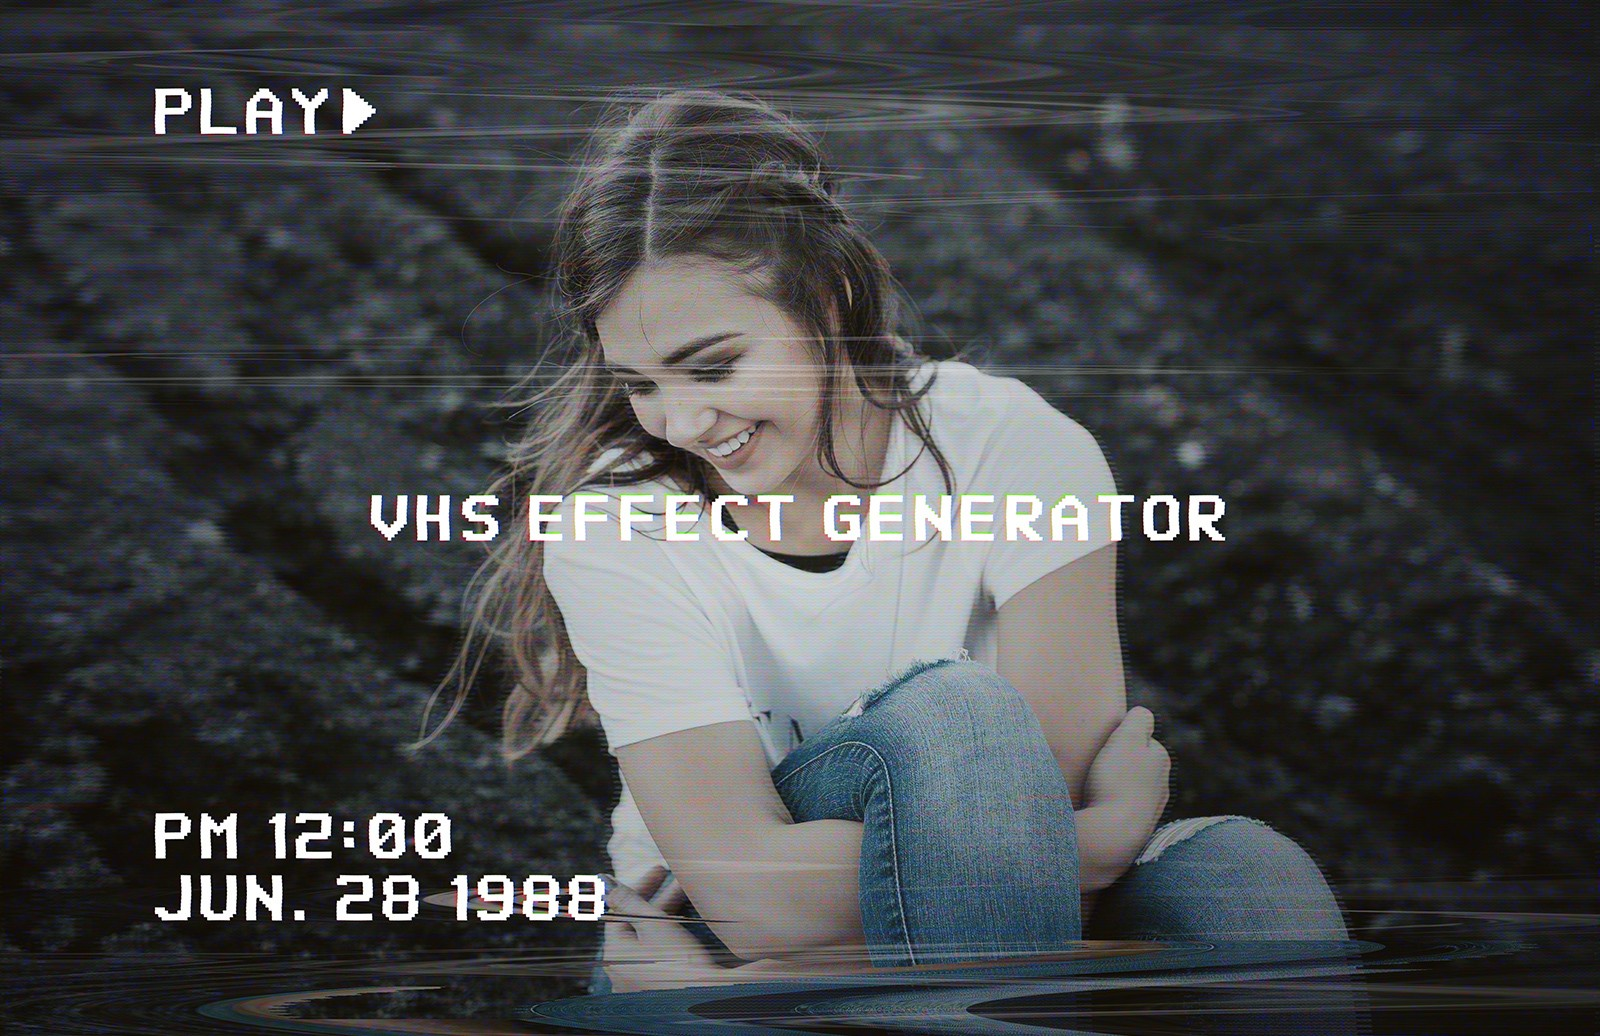 VHS Image Effect Generator